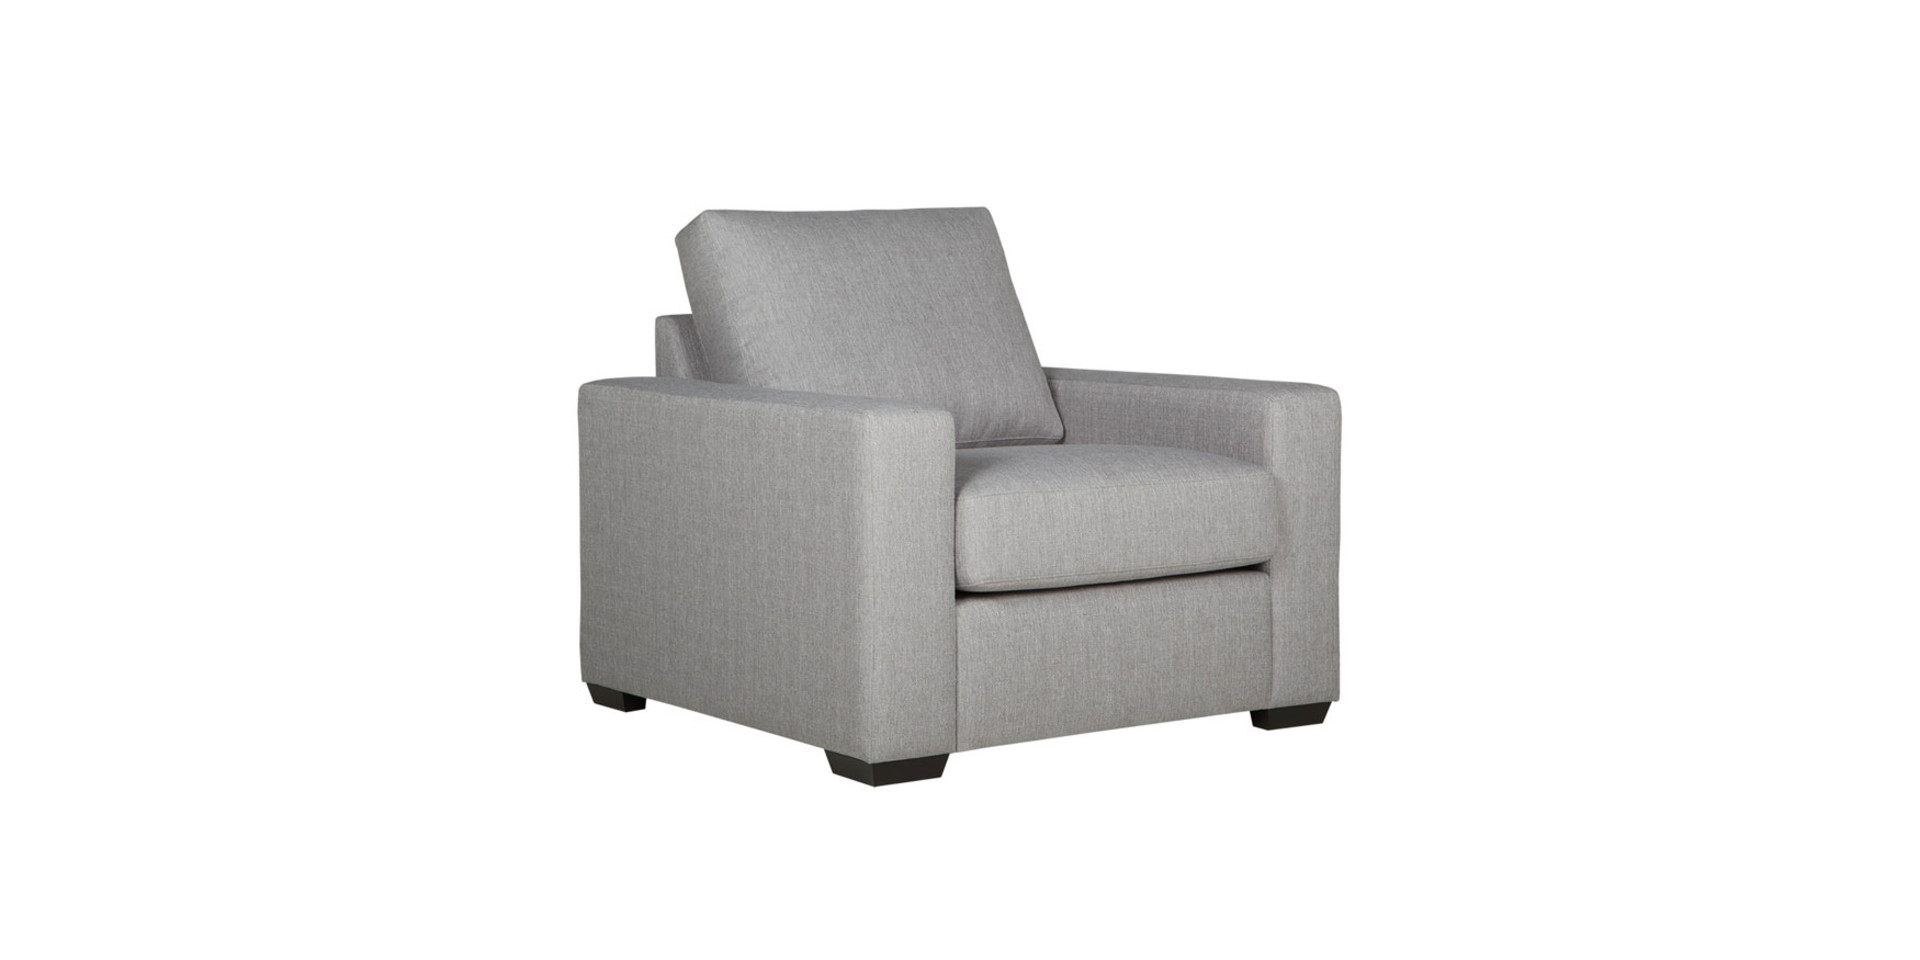 sits-boston-fauteuil-armchair_cedros8_light_grey_2